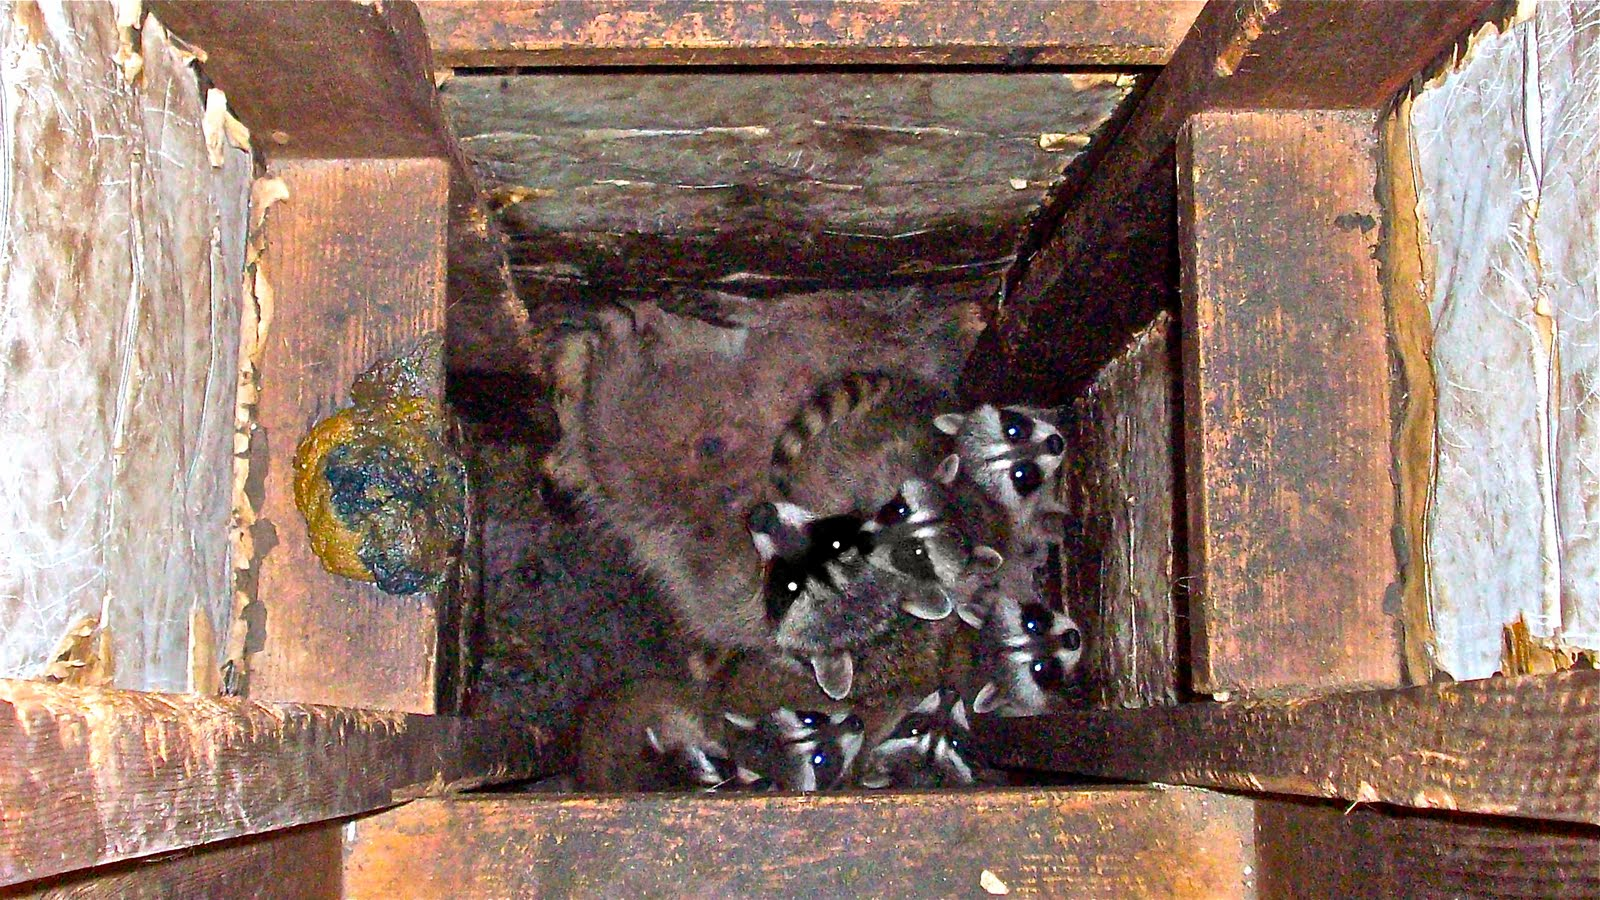 All City Animal Trapping Mother Raccoon Babies In My